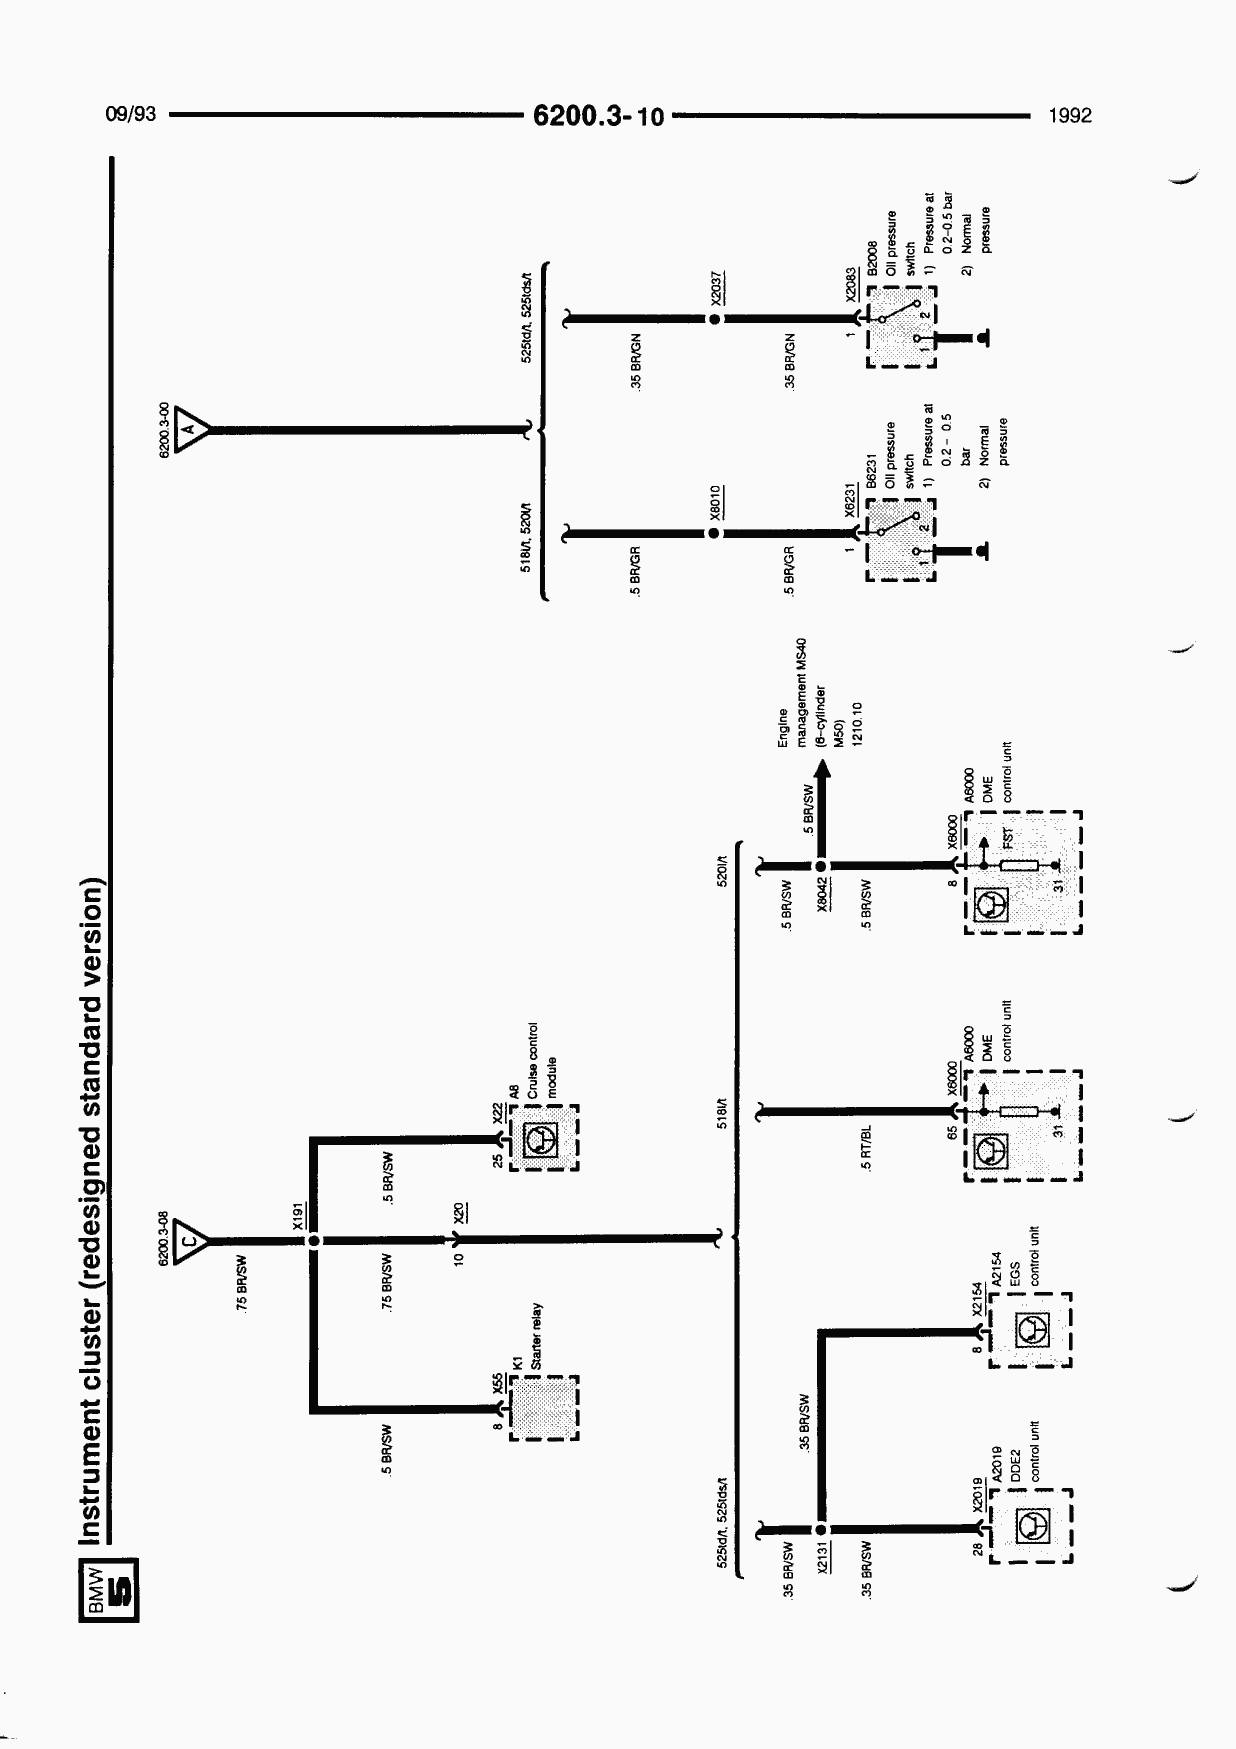 Electrical Troubleshooting Manual 5 Series